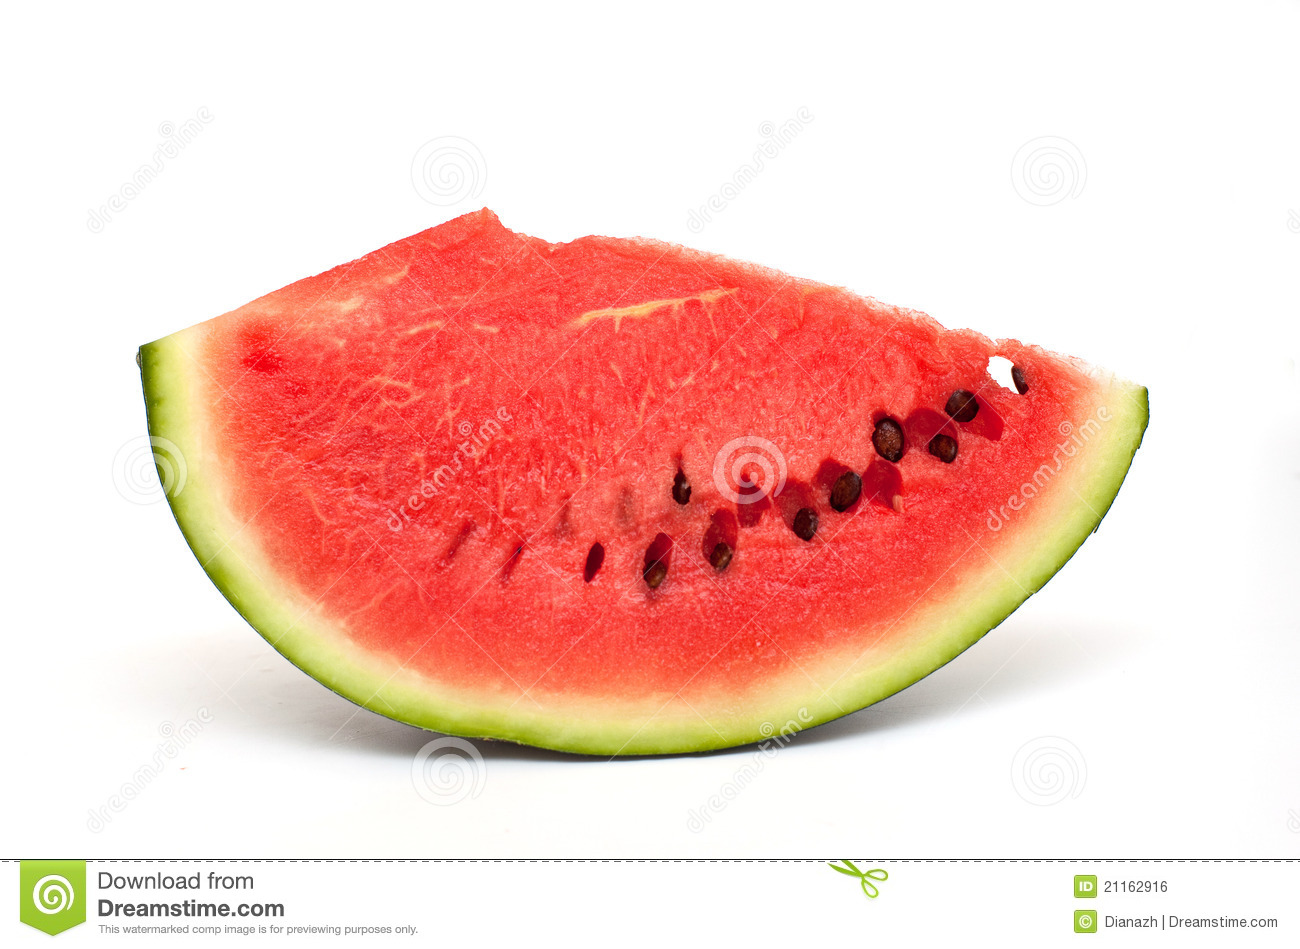 how to eat watermelon seeds safely